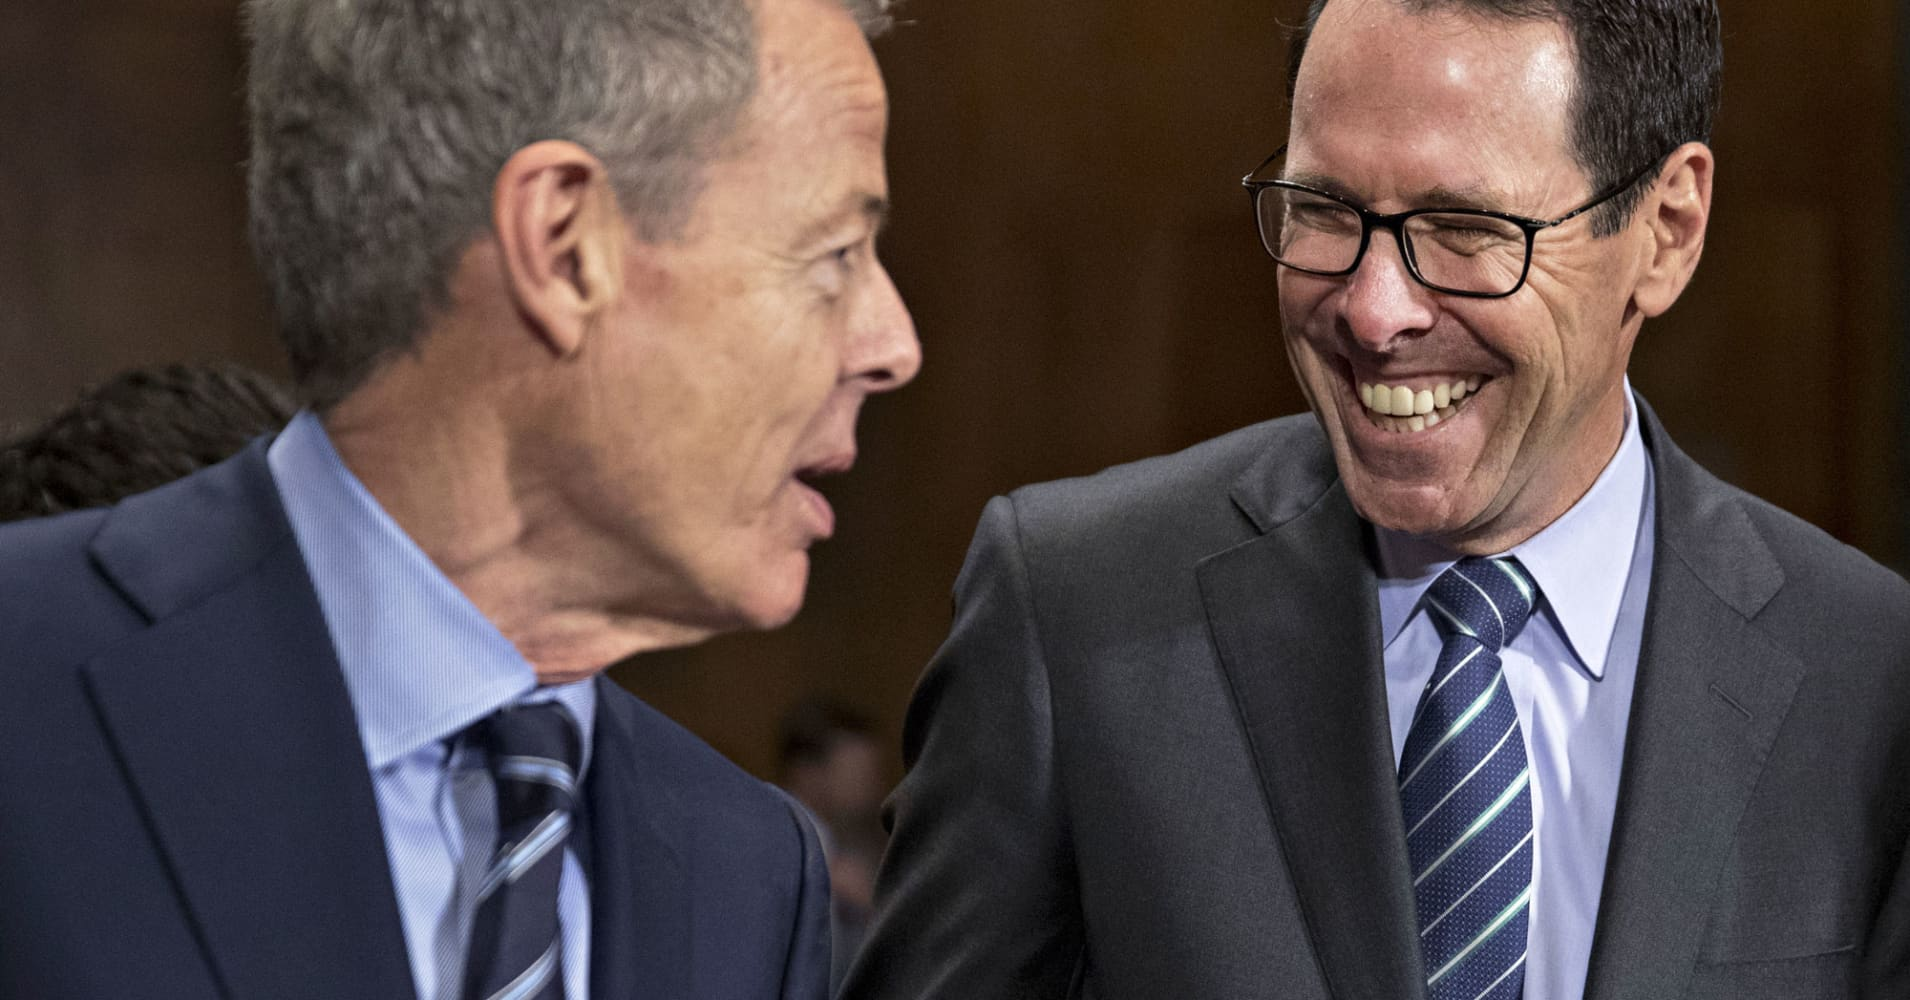 Federal judge clears AT&T's bid for Time Warner